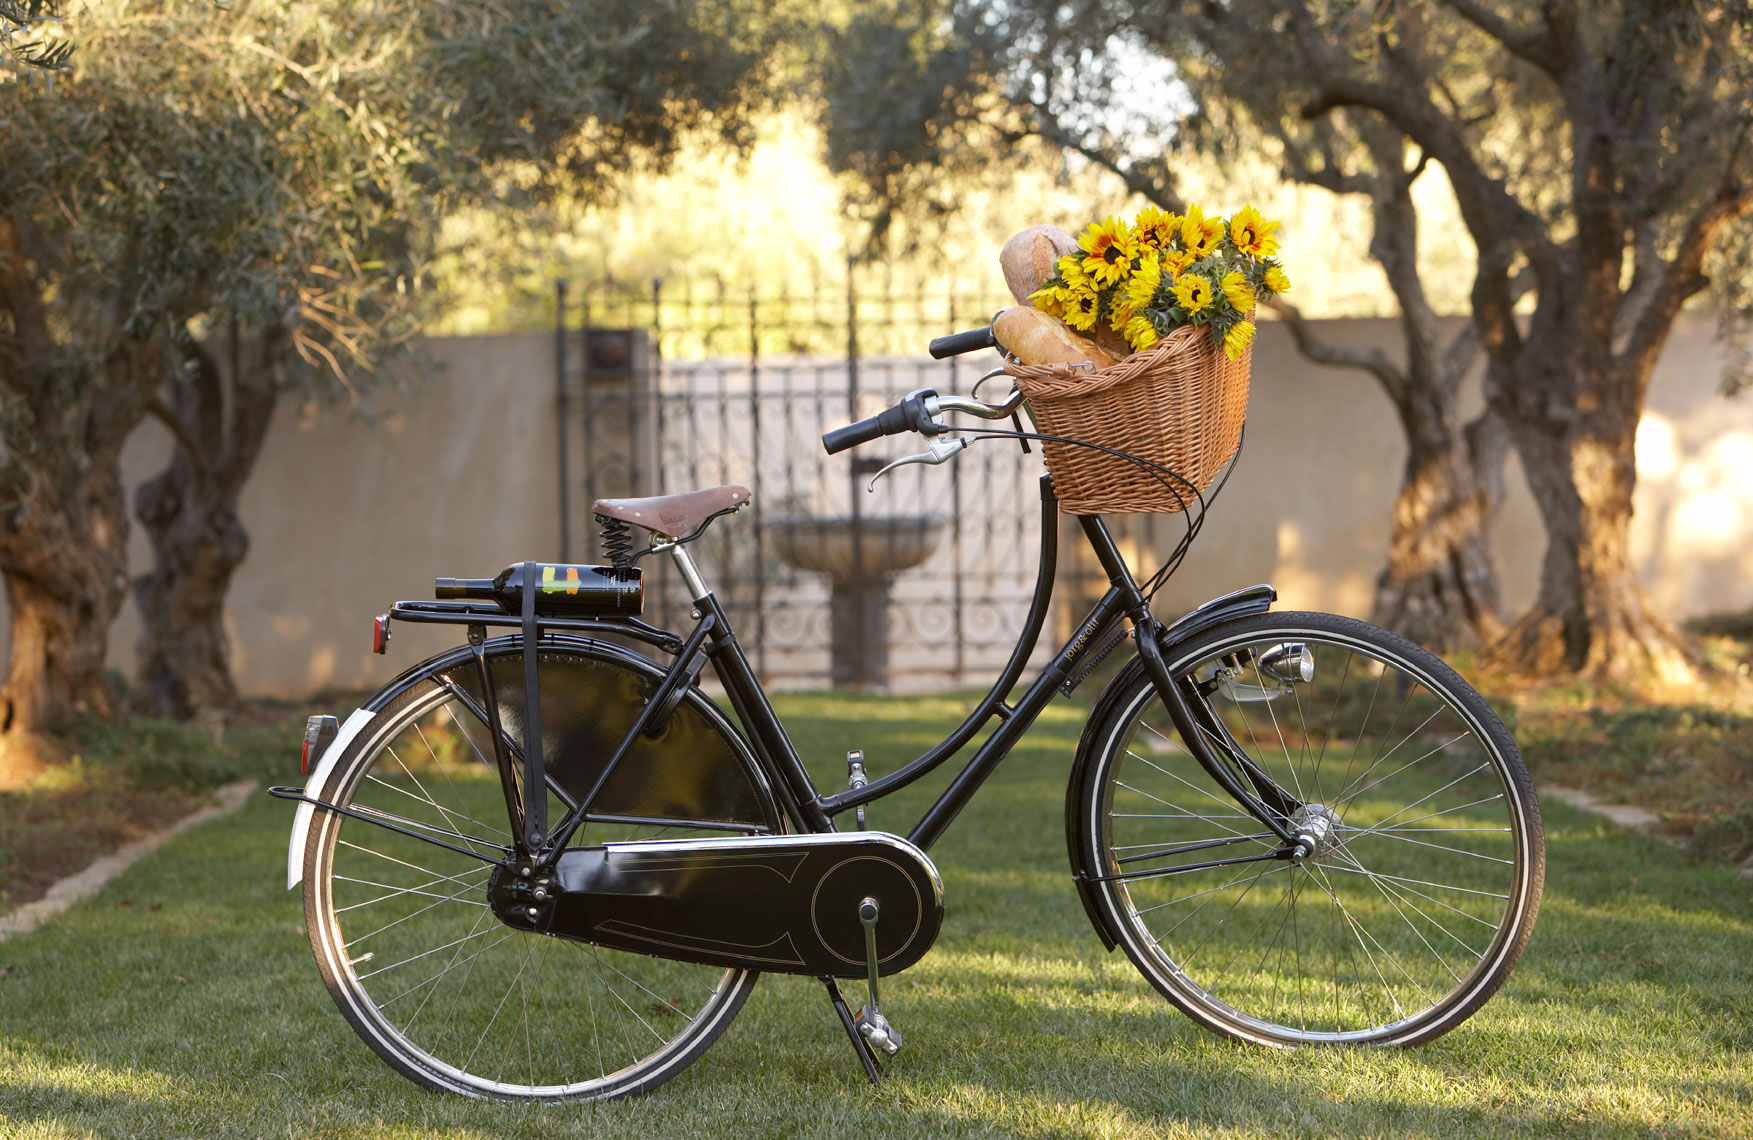 Old fashioned black bike with wicker basket of flowers